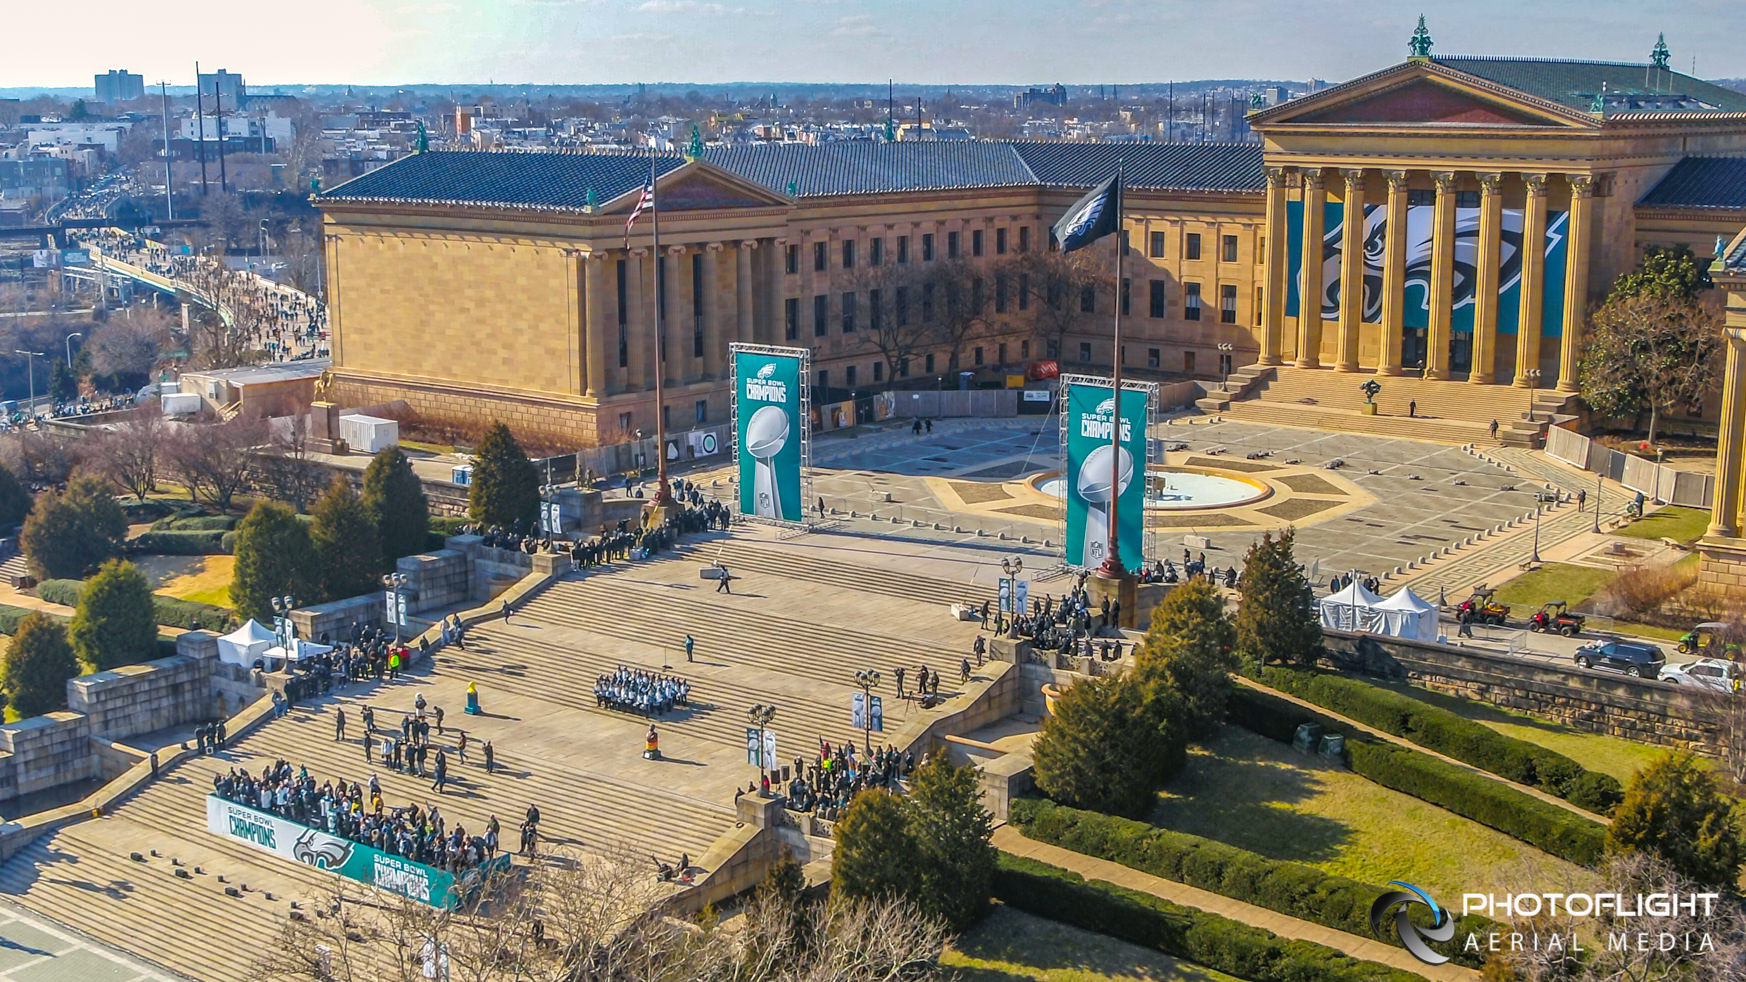 PhotoFlight Aerial Media Drone Coverage of the Spectacular Philadelphia Eagles 2018 Super Bowl Victory Parade